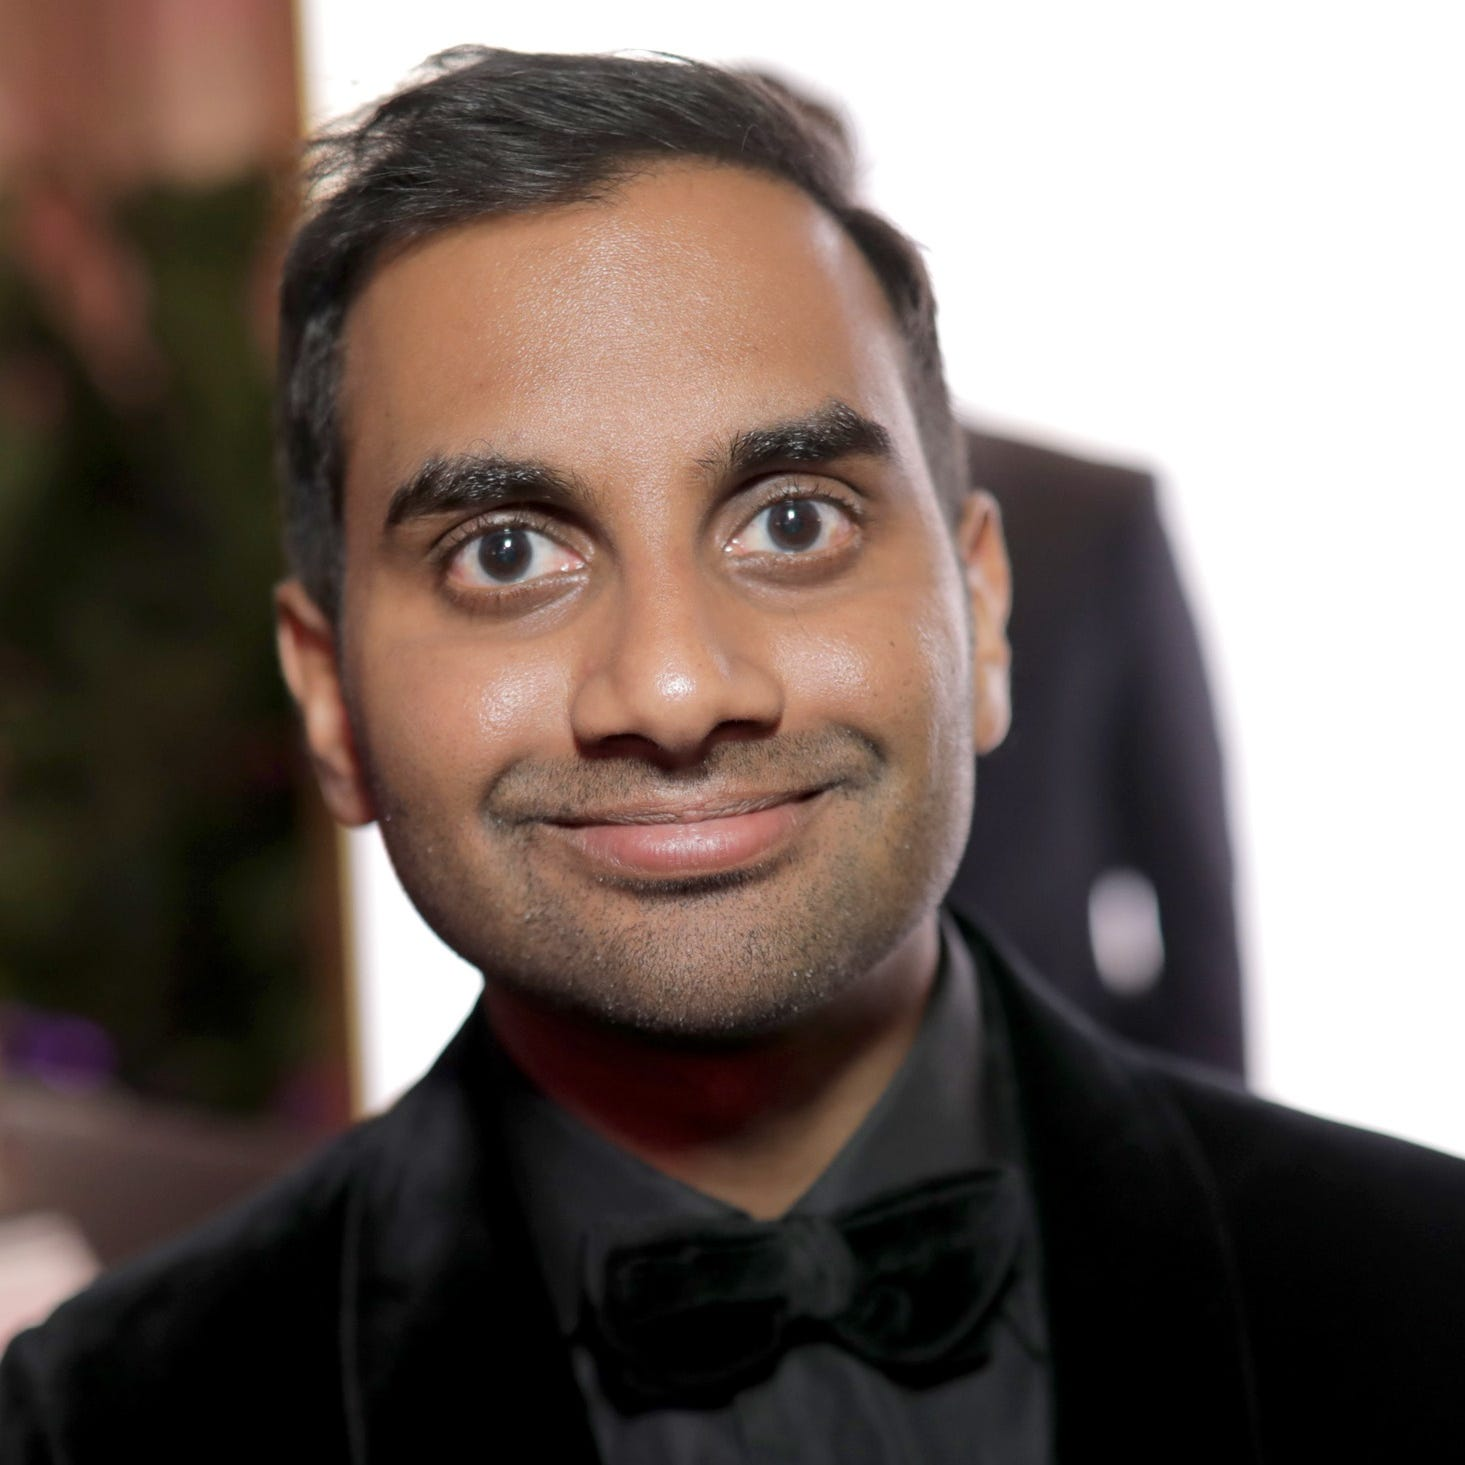 Aziz Ansari in Memphis: What to know